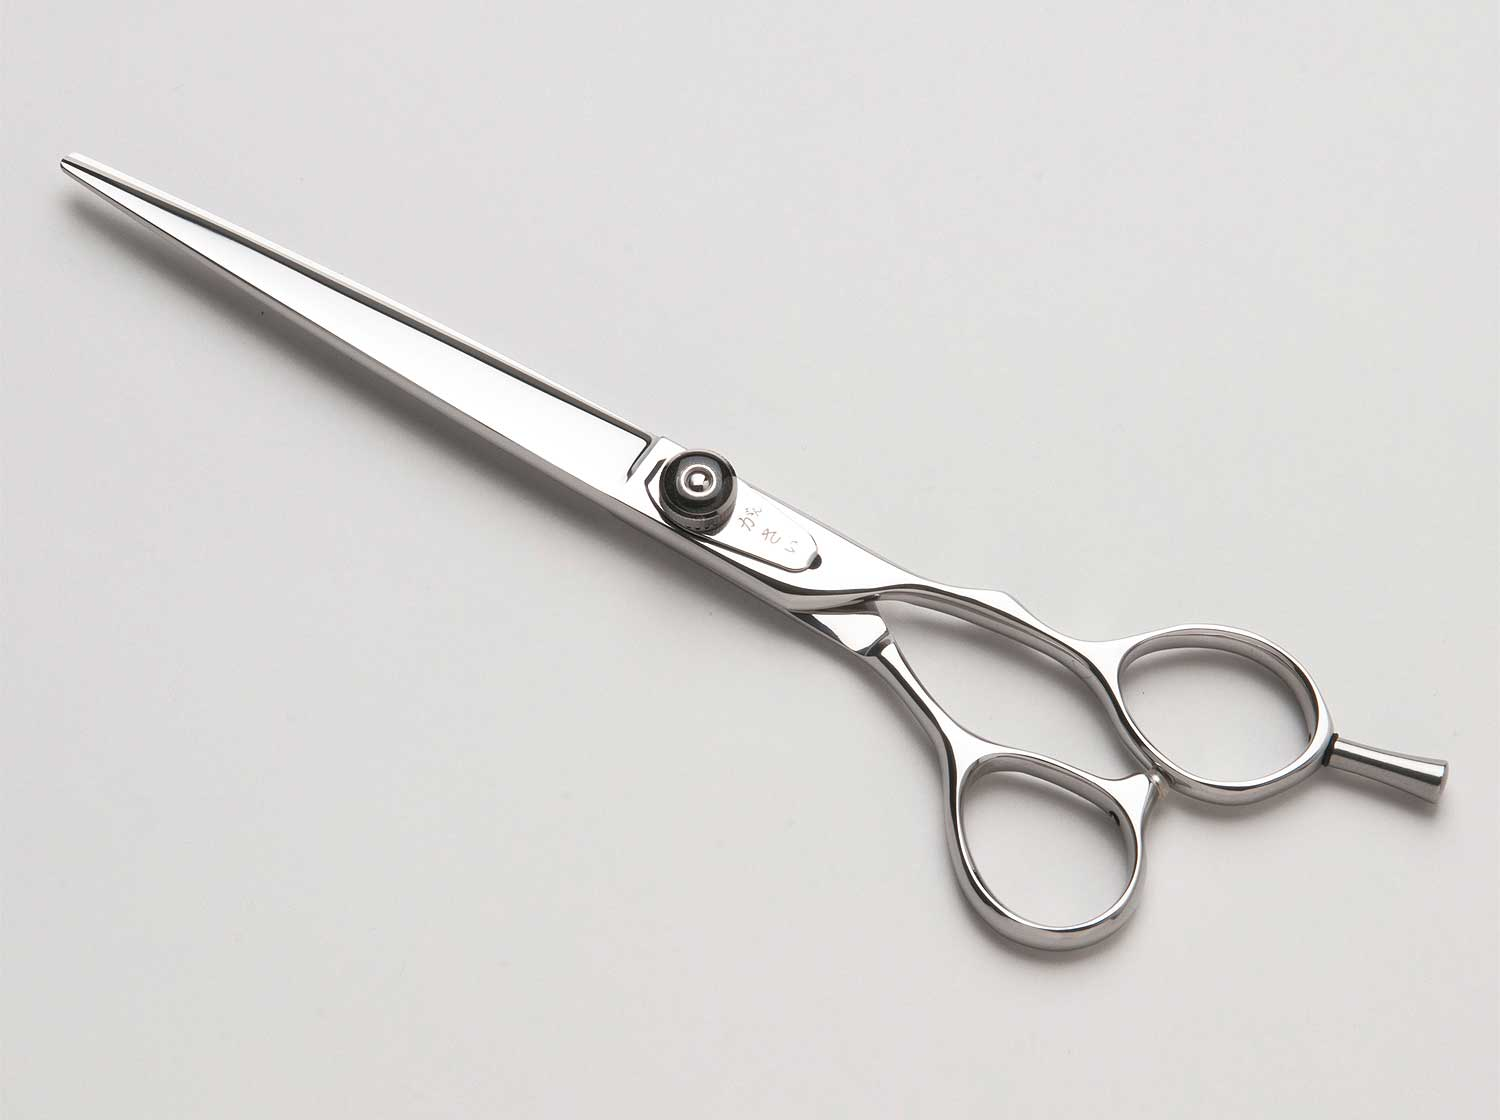 kansai-7-inch-right-hand-long-korean-hair-cutting-scissor.jpg